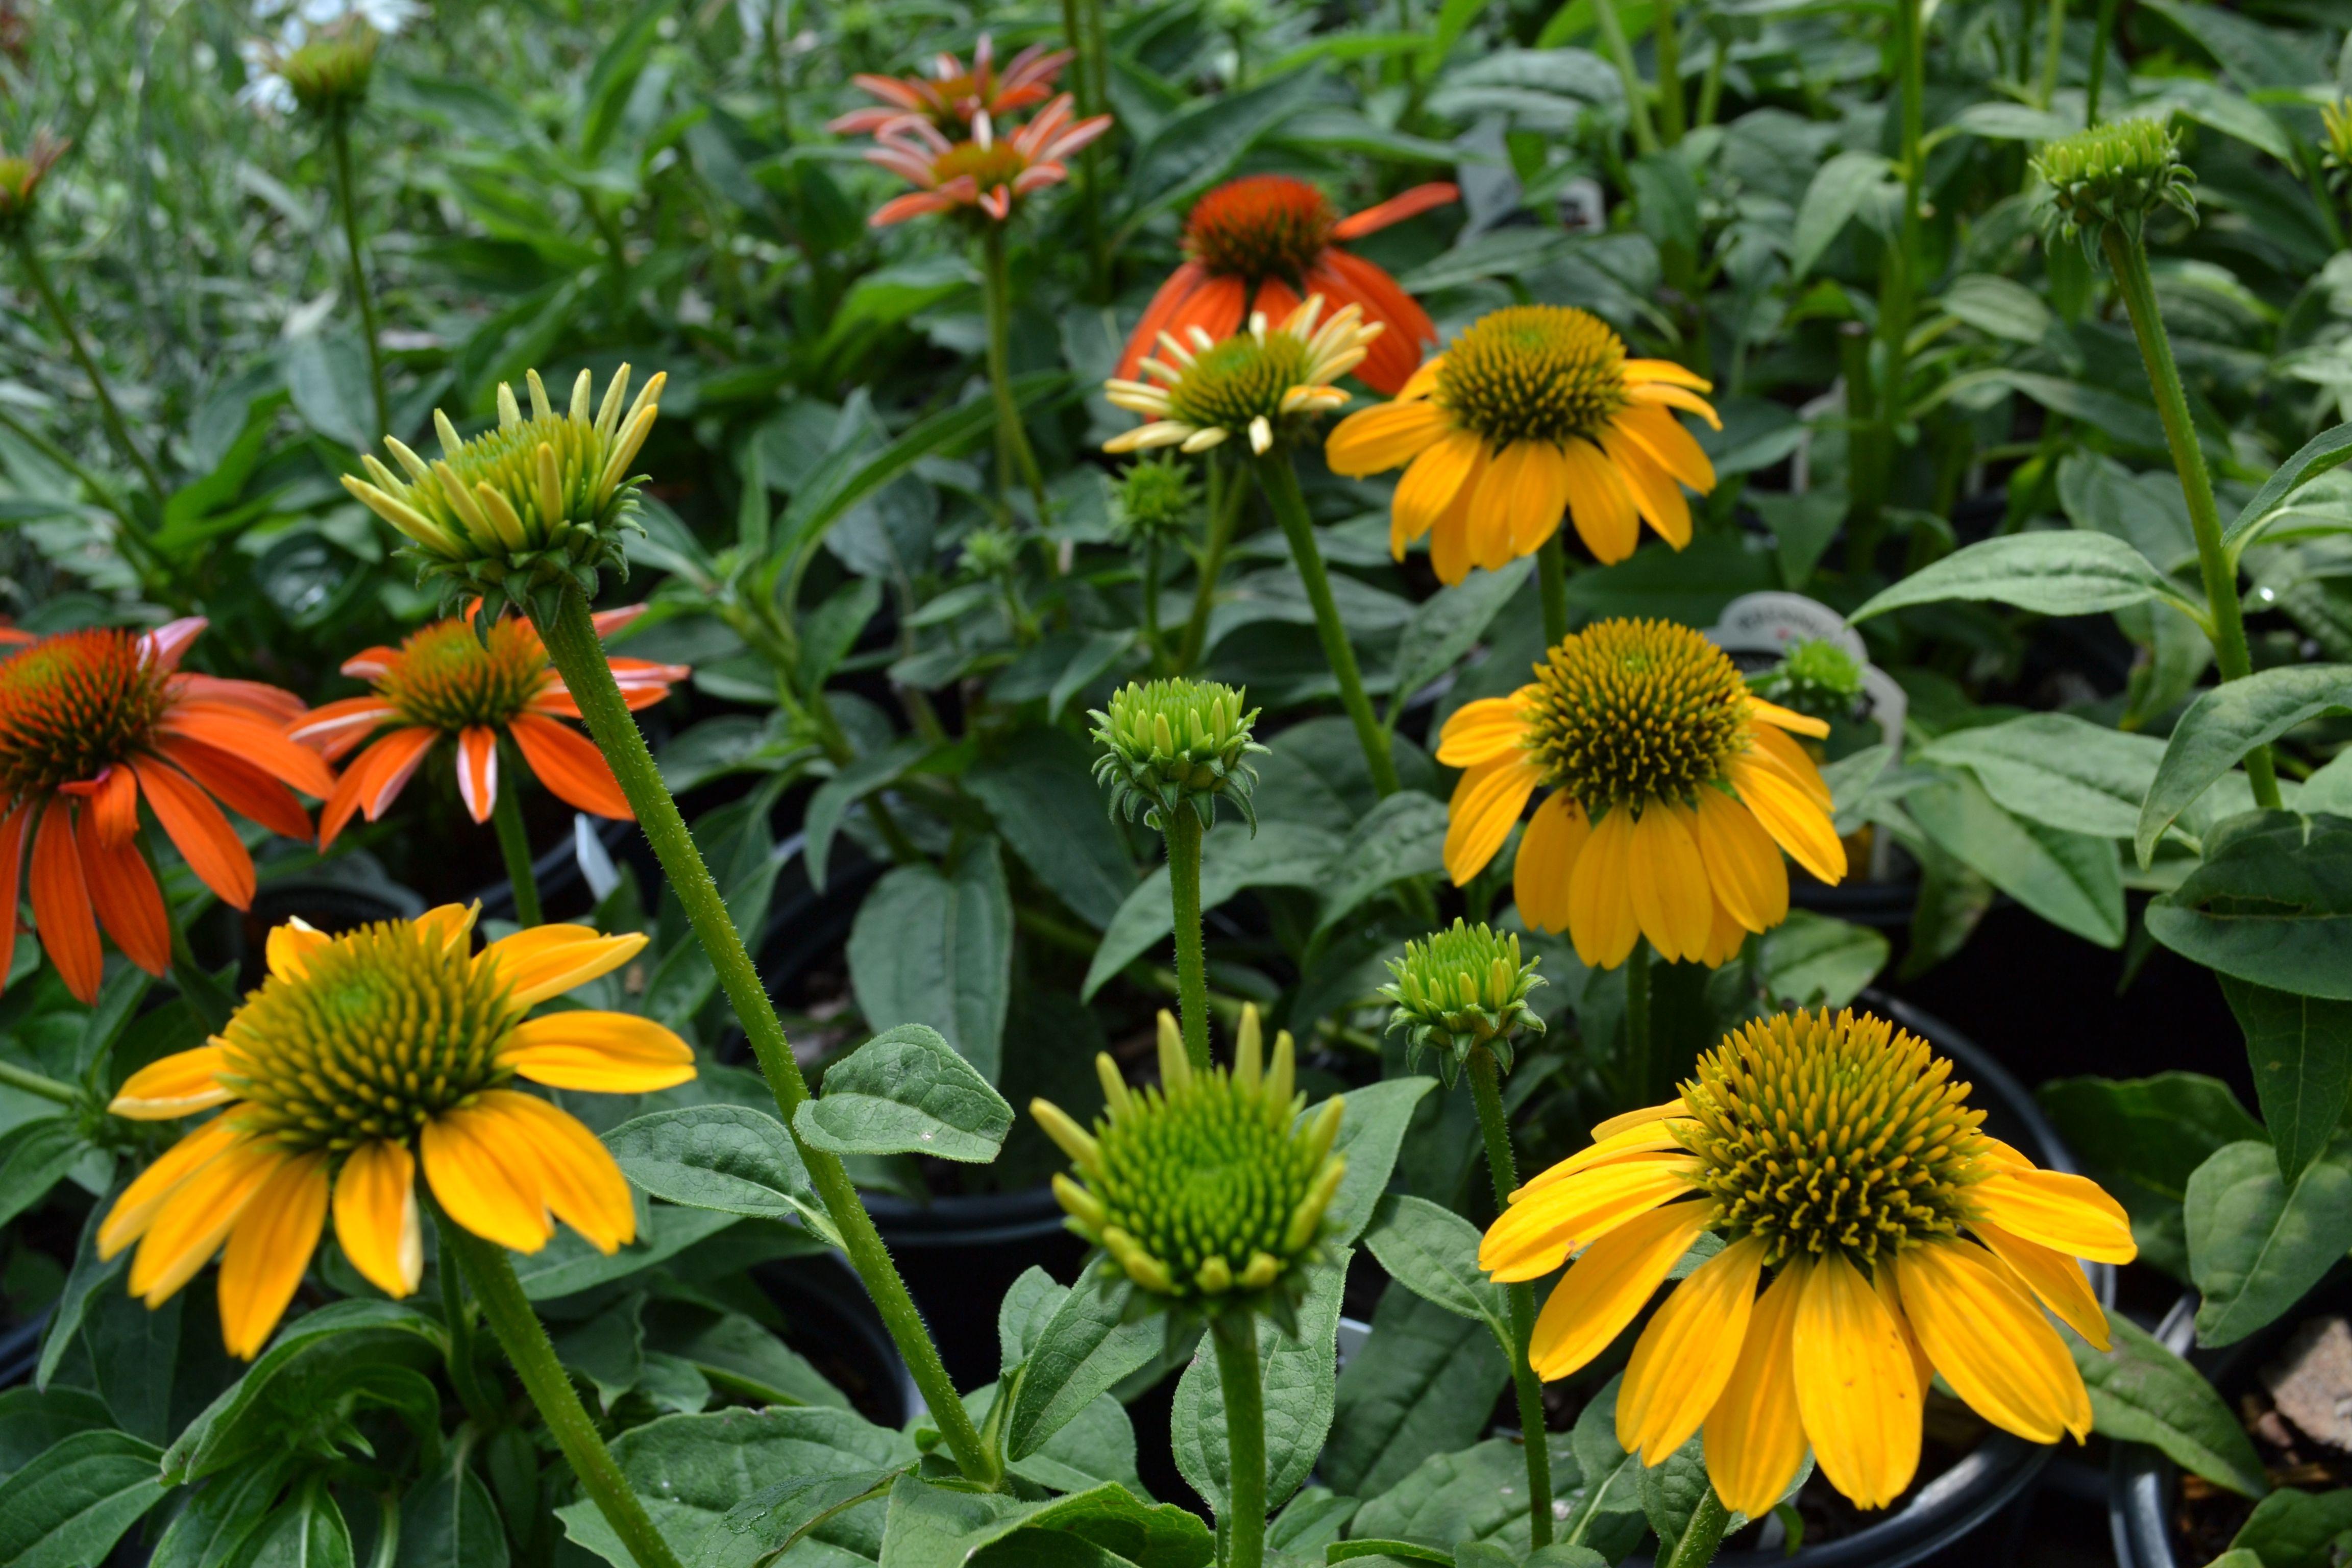 Coneflower Need Gardening Advice Colonial Gardens Is Here To